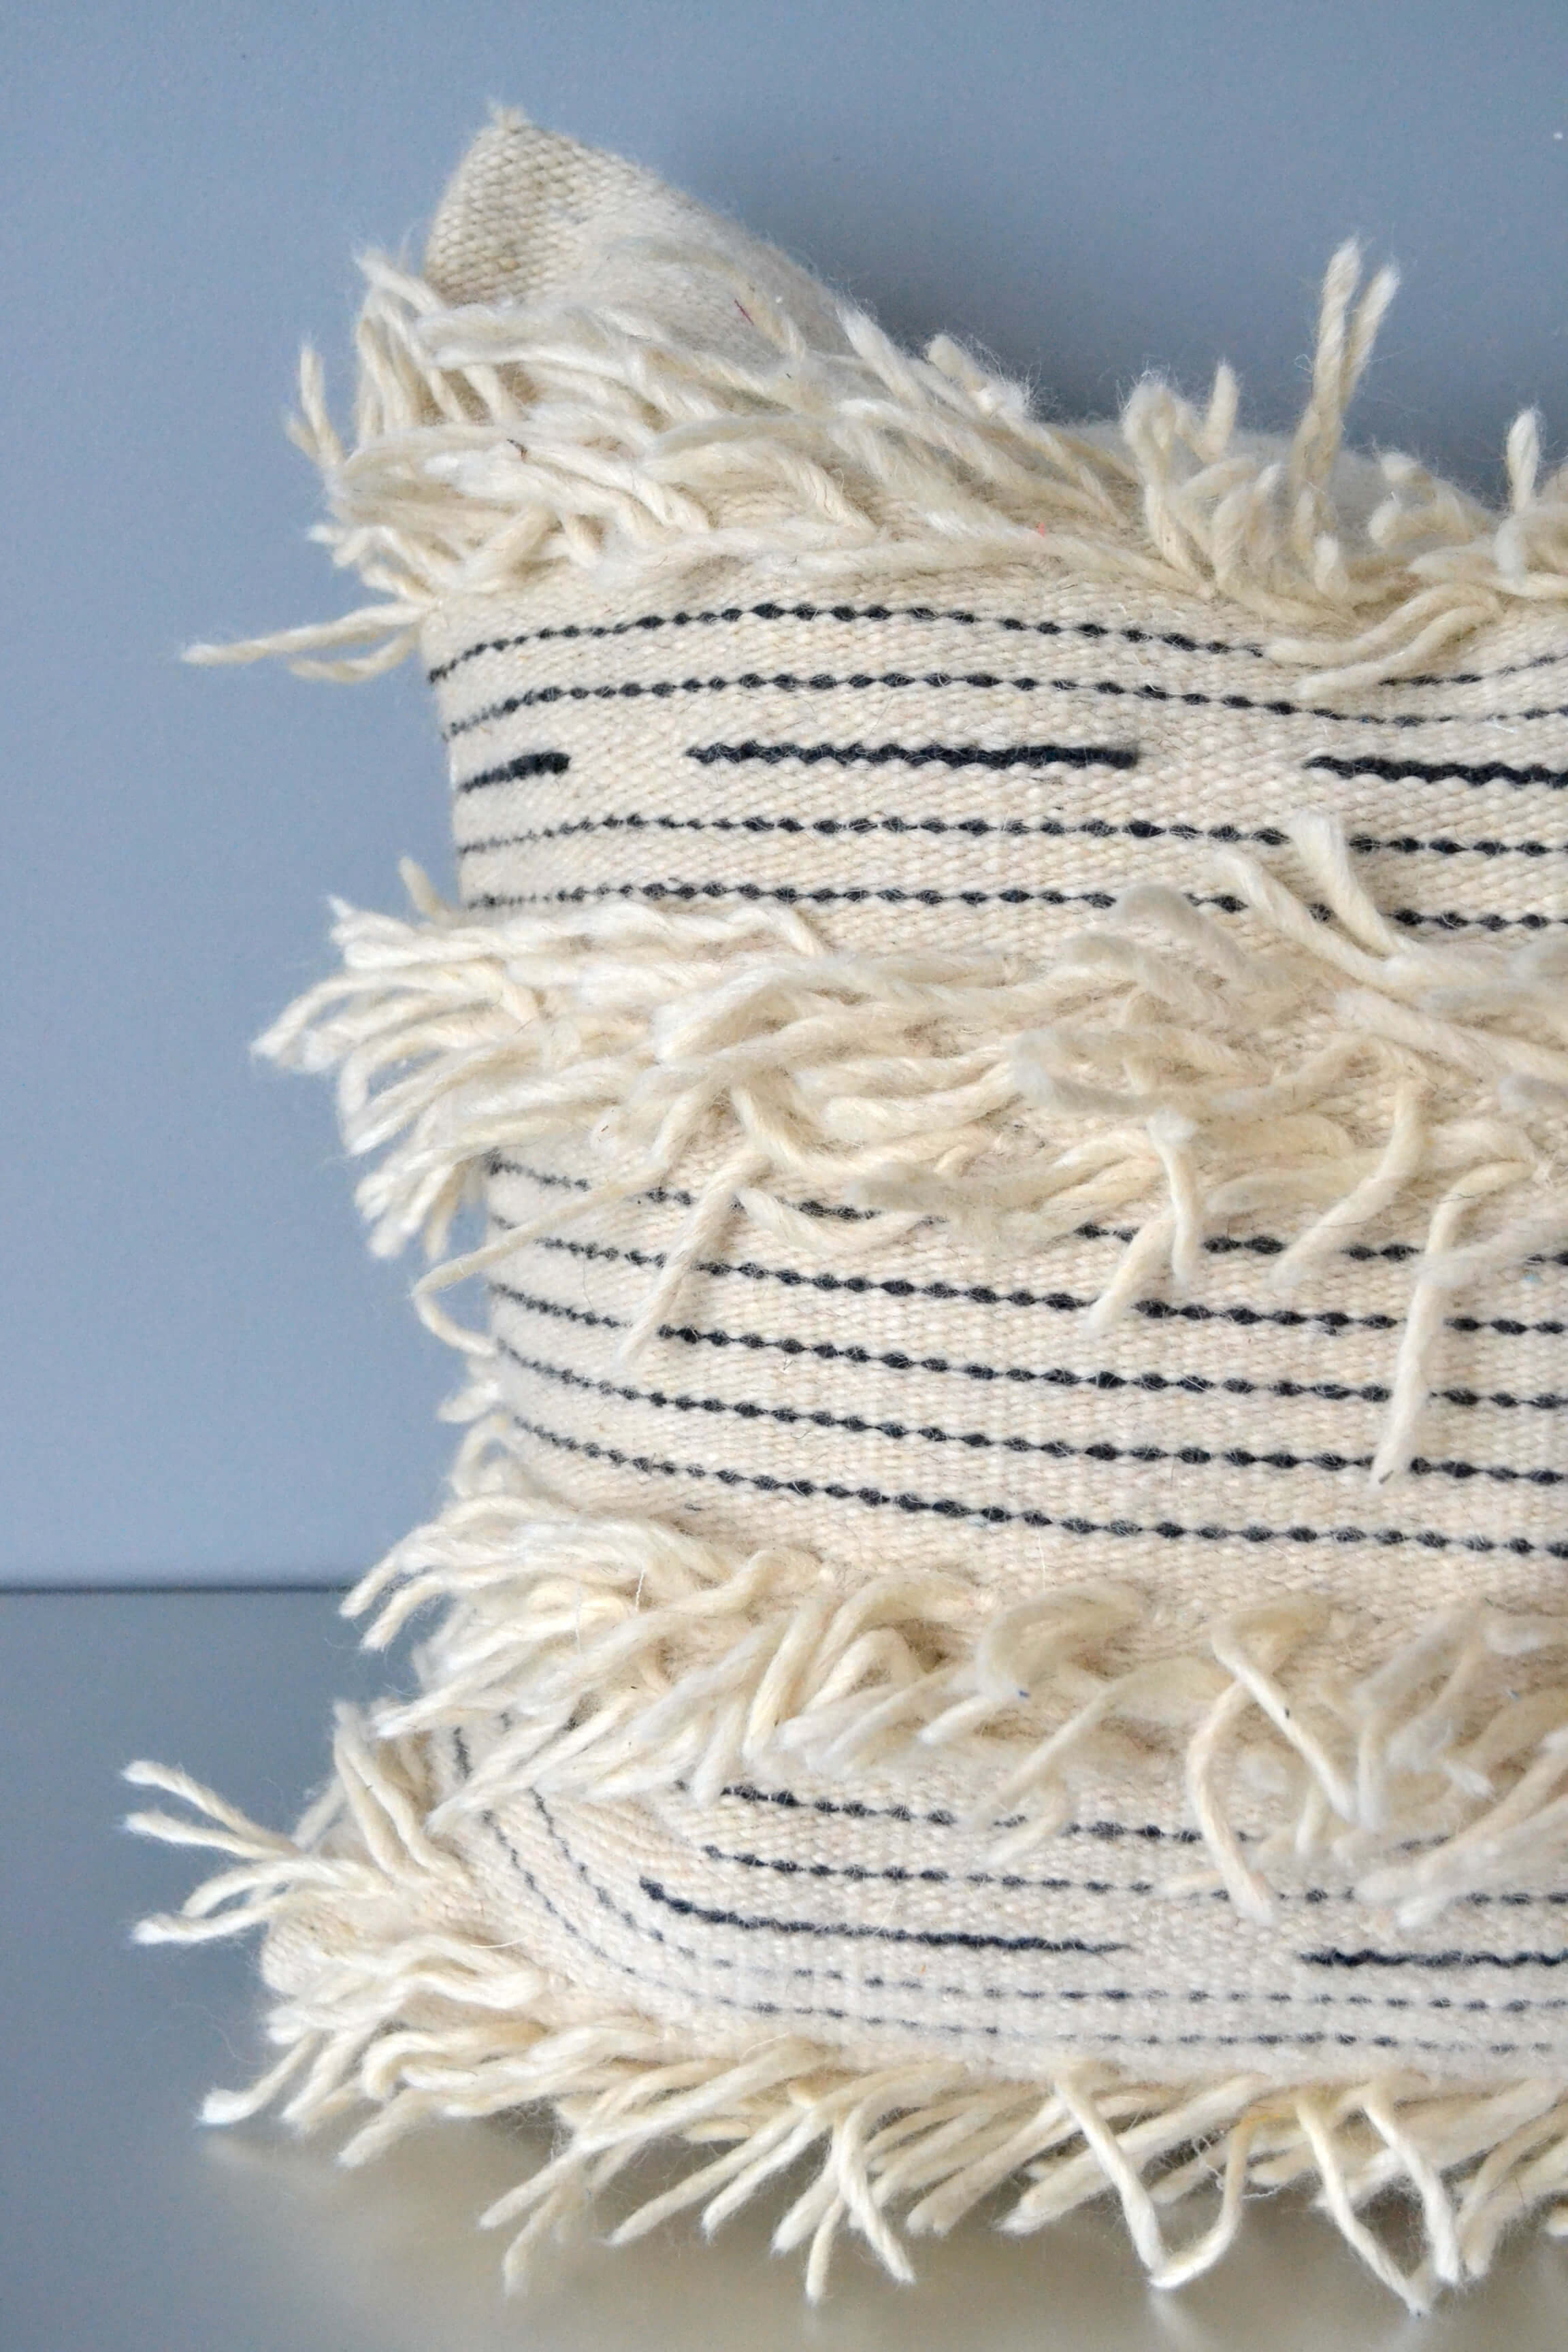 White fringe wool throw pillow closeup by Yuba Mercantile